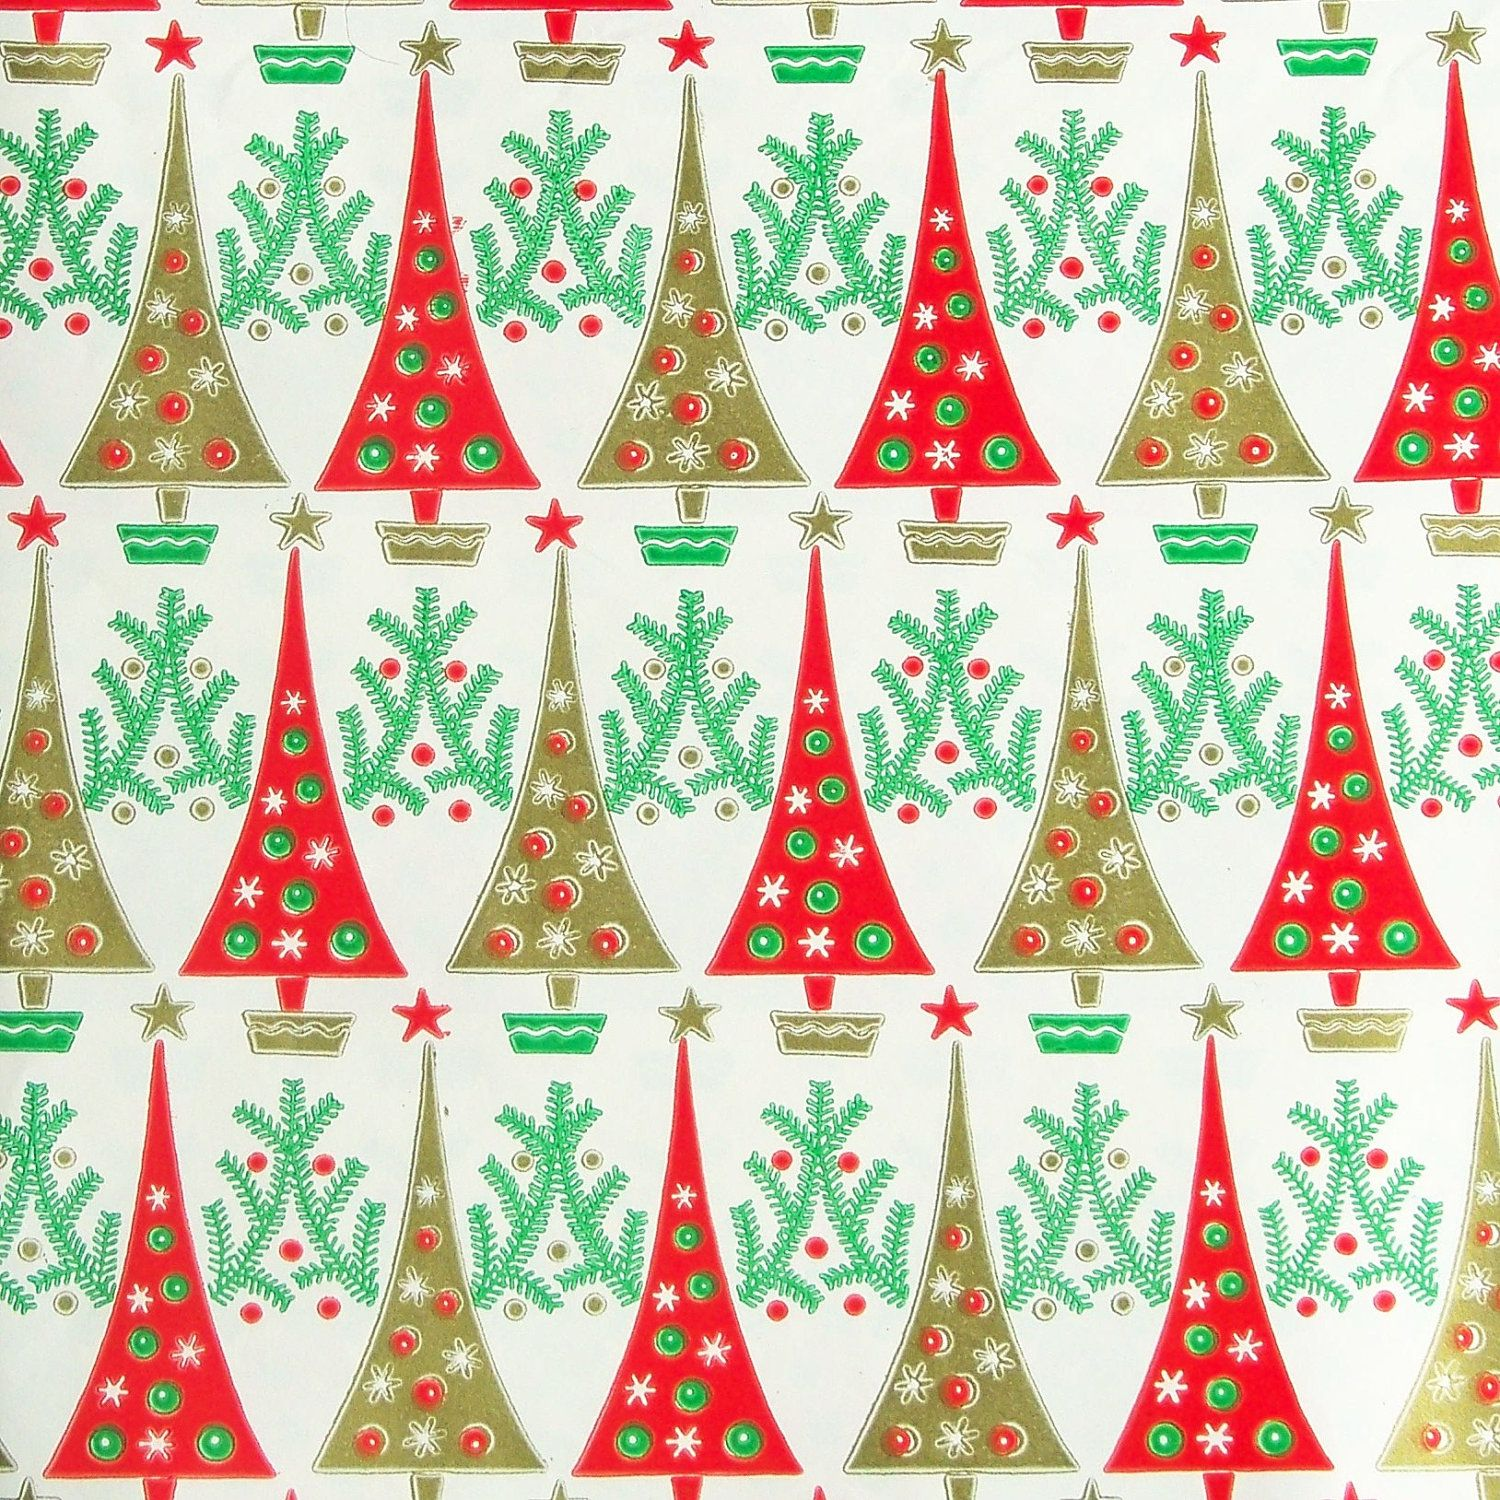 Vintage 1960s Christmas Wrapping Paper Trees Red Green Gold Etsy Vintage Christmas Wrapping Paper Vintage Wrapping Paper Christmas Wrapping